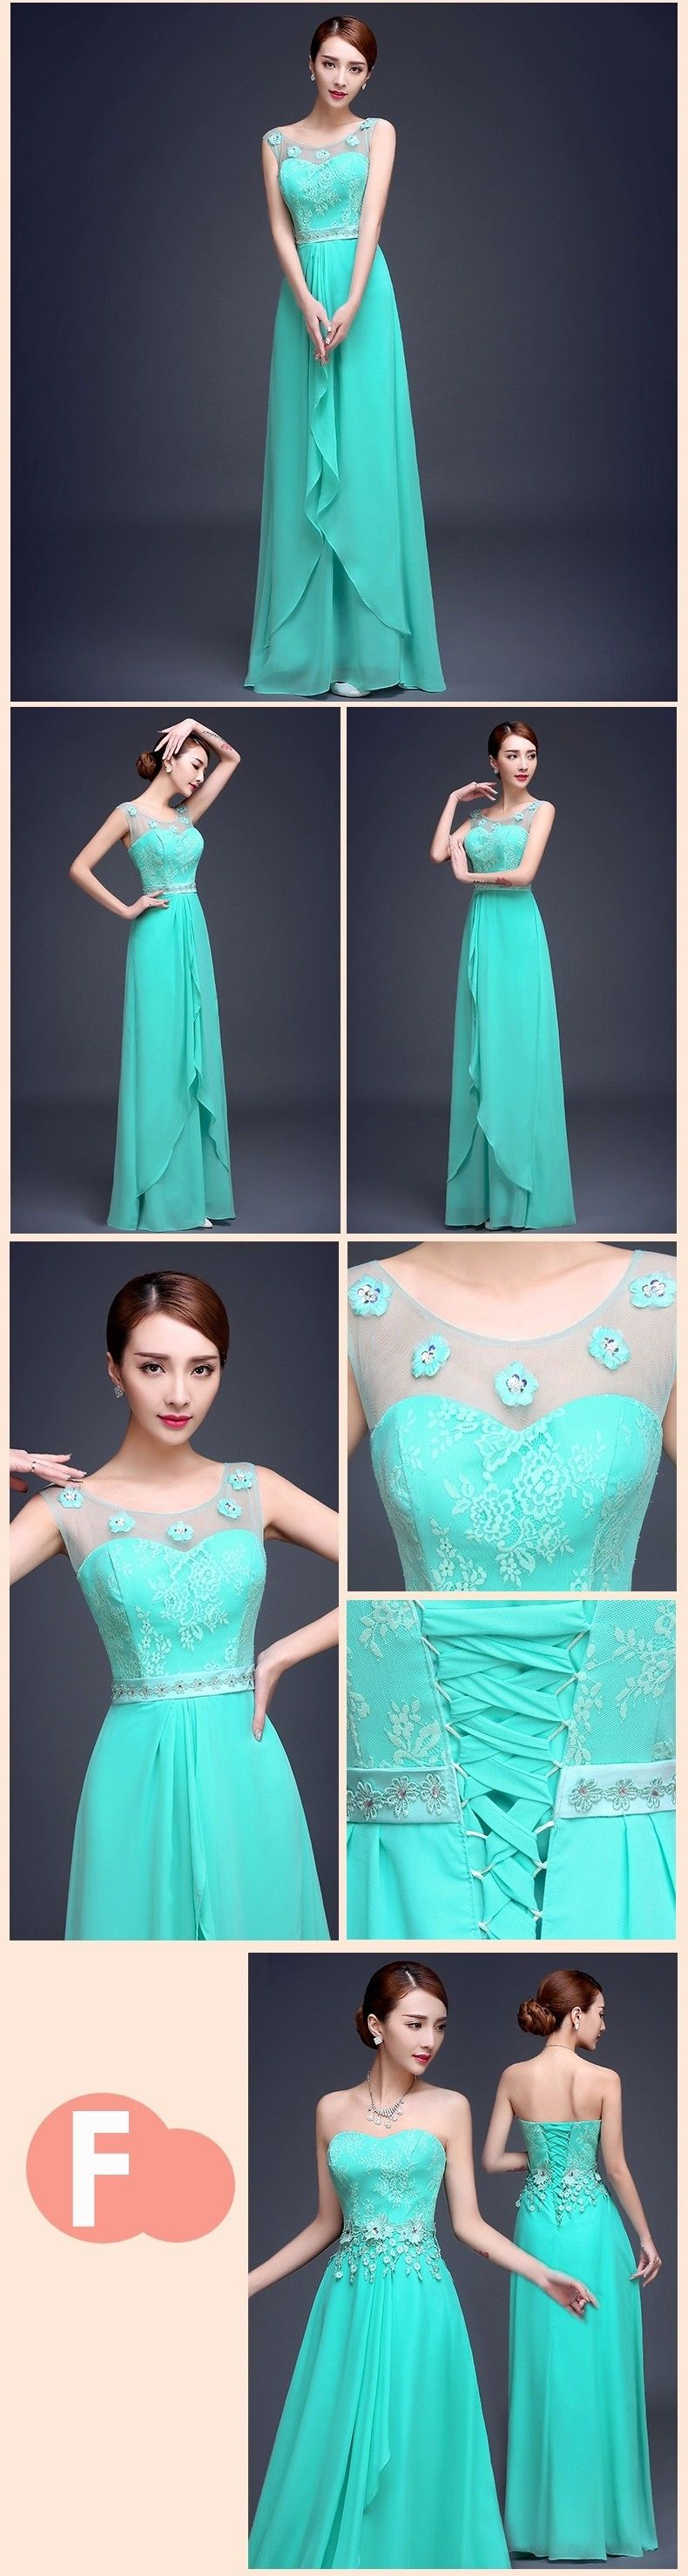 Aliexpress.com : Buy Vestido De Festa Turquoise Bridesmaid Dress ...